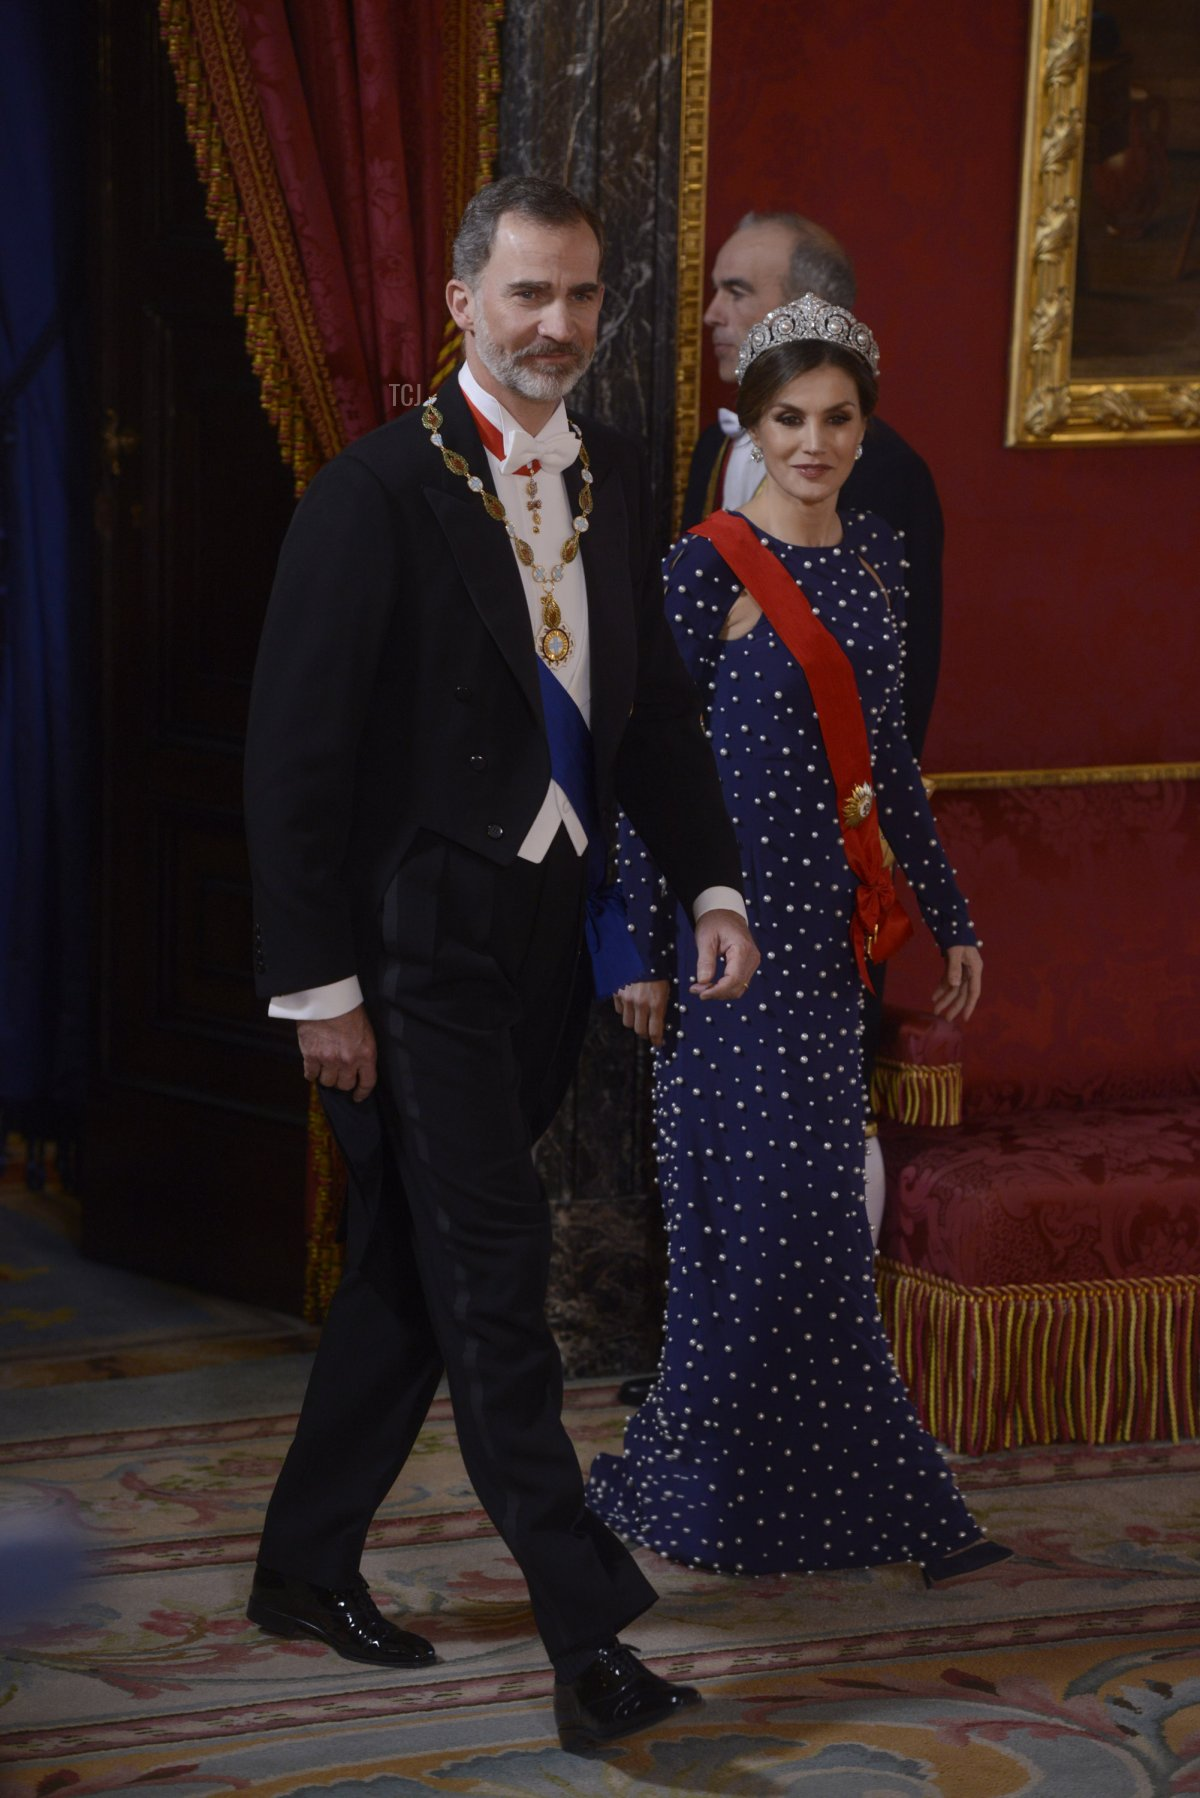 King Felipe VI of Spain and Queen Letizia of Spain host a dinner gala for the President of Portugal Marcelo Rebelo de Sousa at the Royal Palace on April 16, 2018 in Madrid, Spain